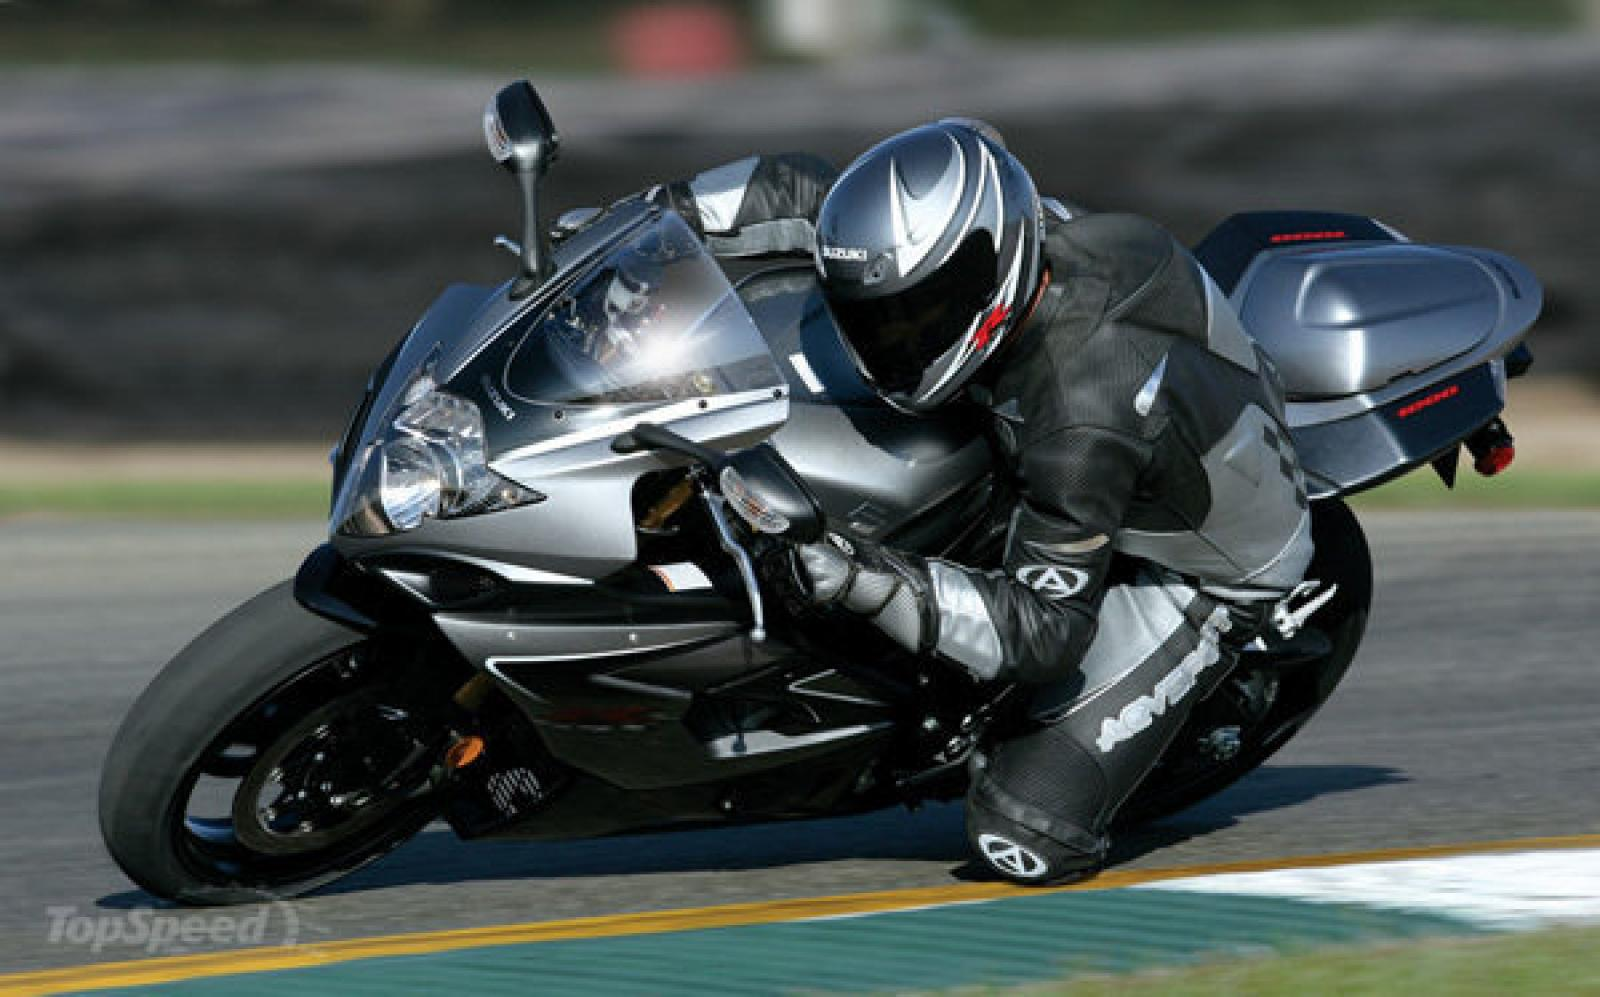 2007 suzuki gsx r 1000 phantom moto zombdrive com. Black Bedroom Furniture Sets. Home Design Ideas